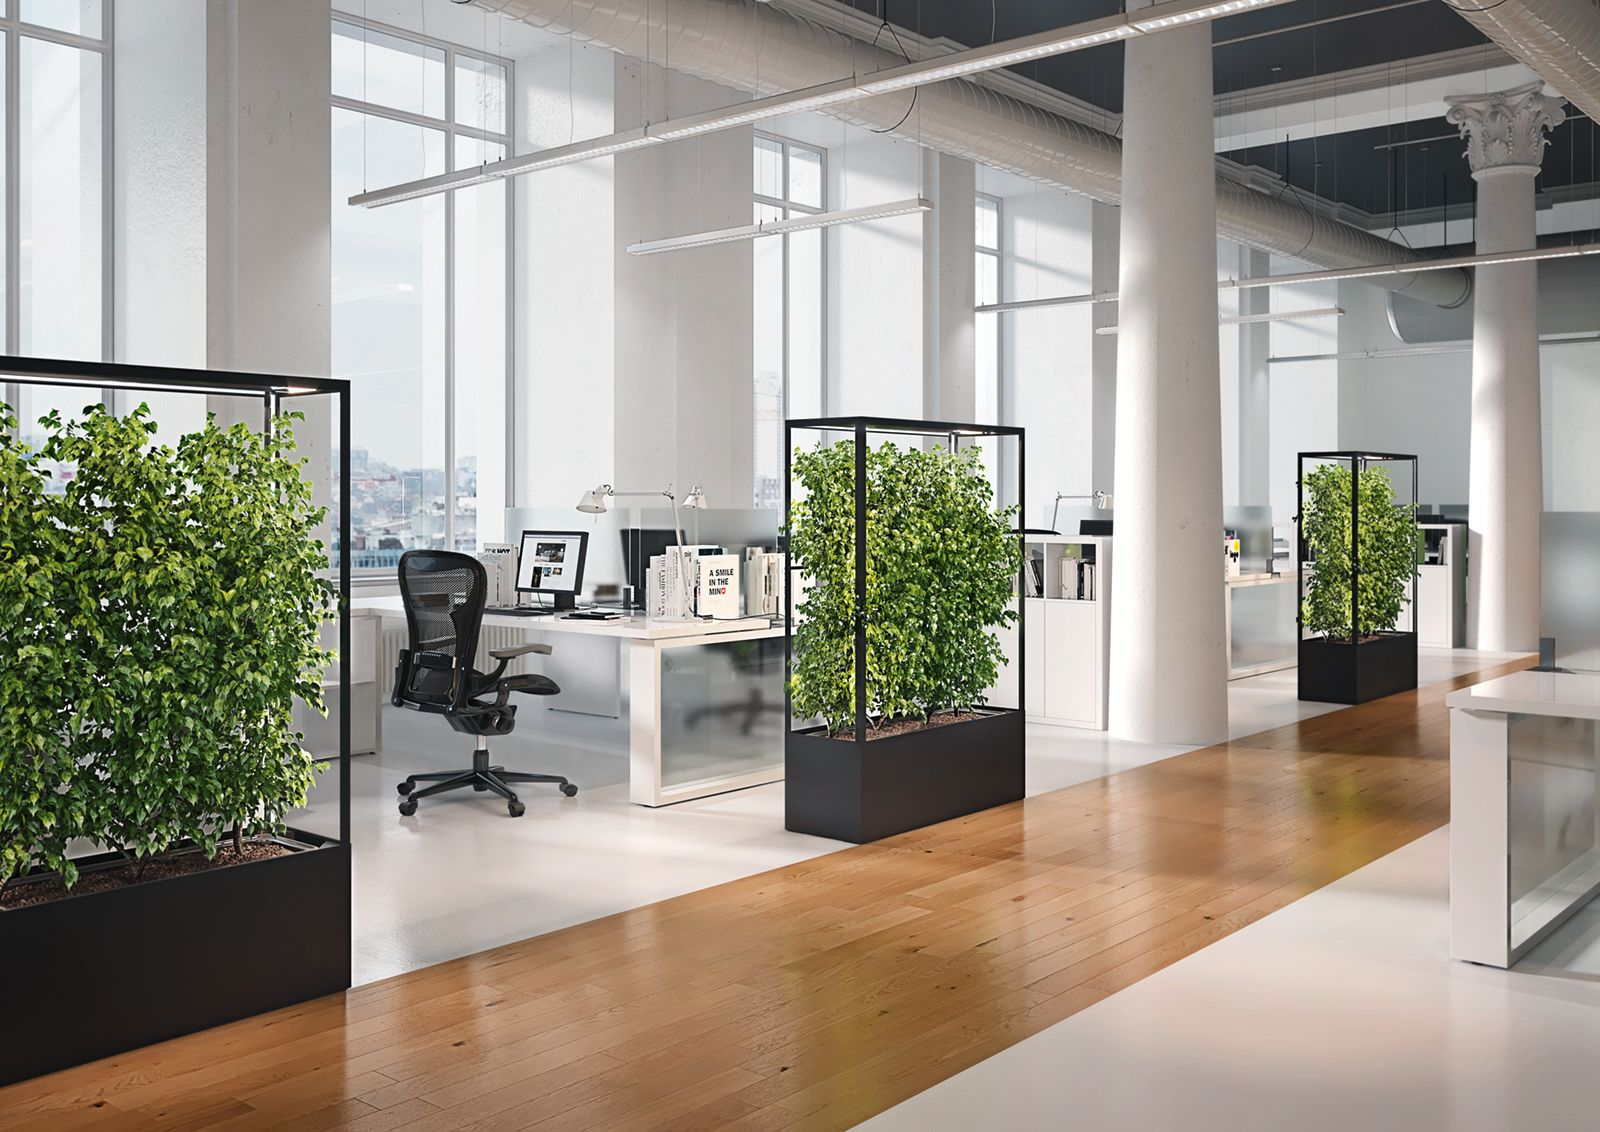 Cube planted mobil greenwall and room divider to create healthy